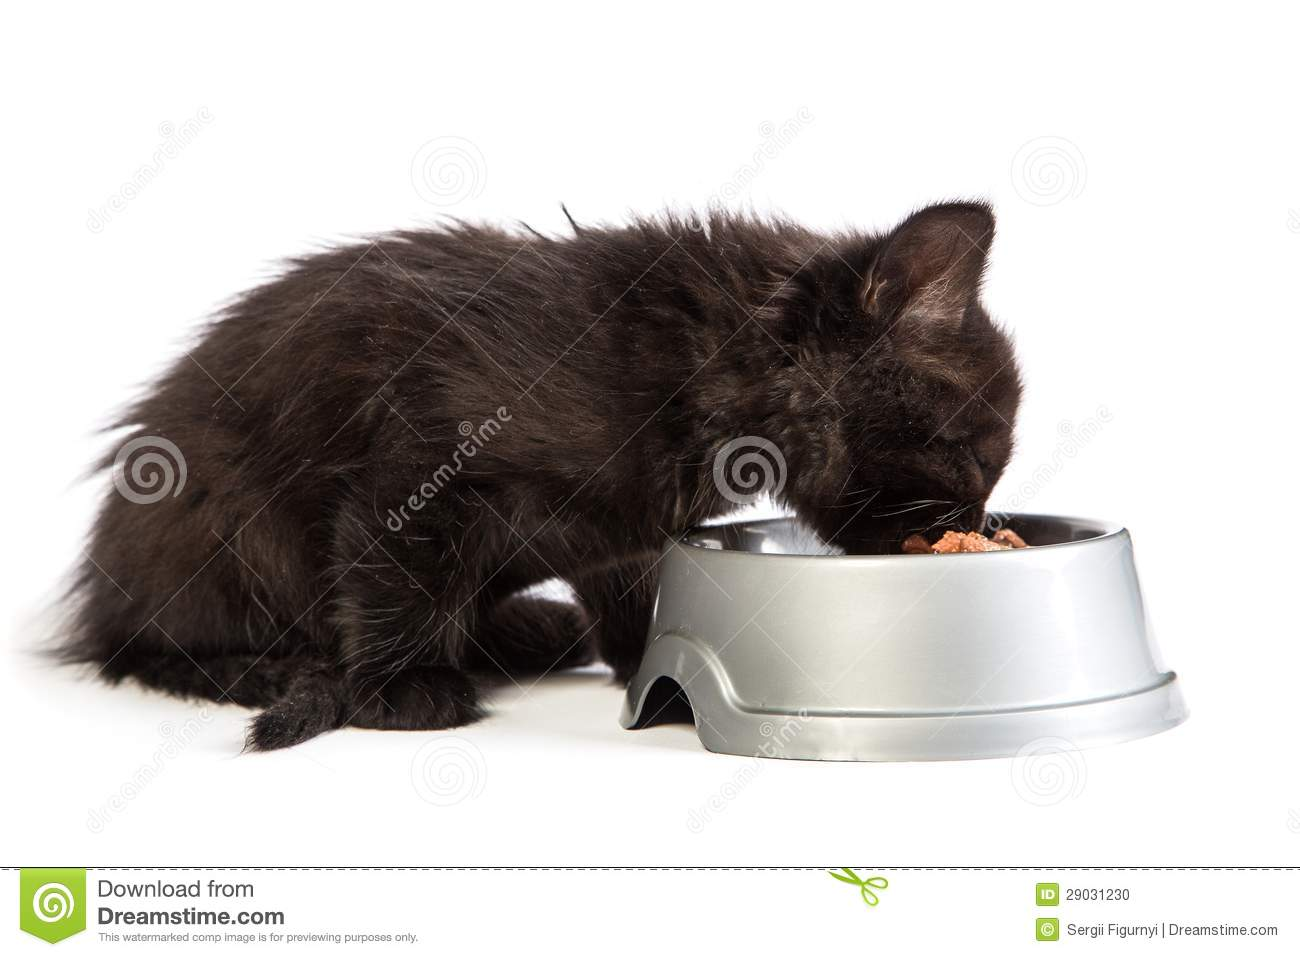 How To Feed A Cat Raw Food